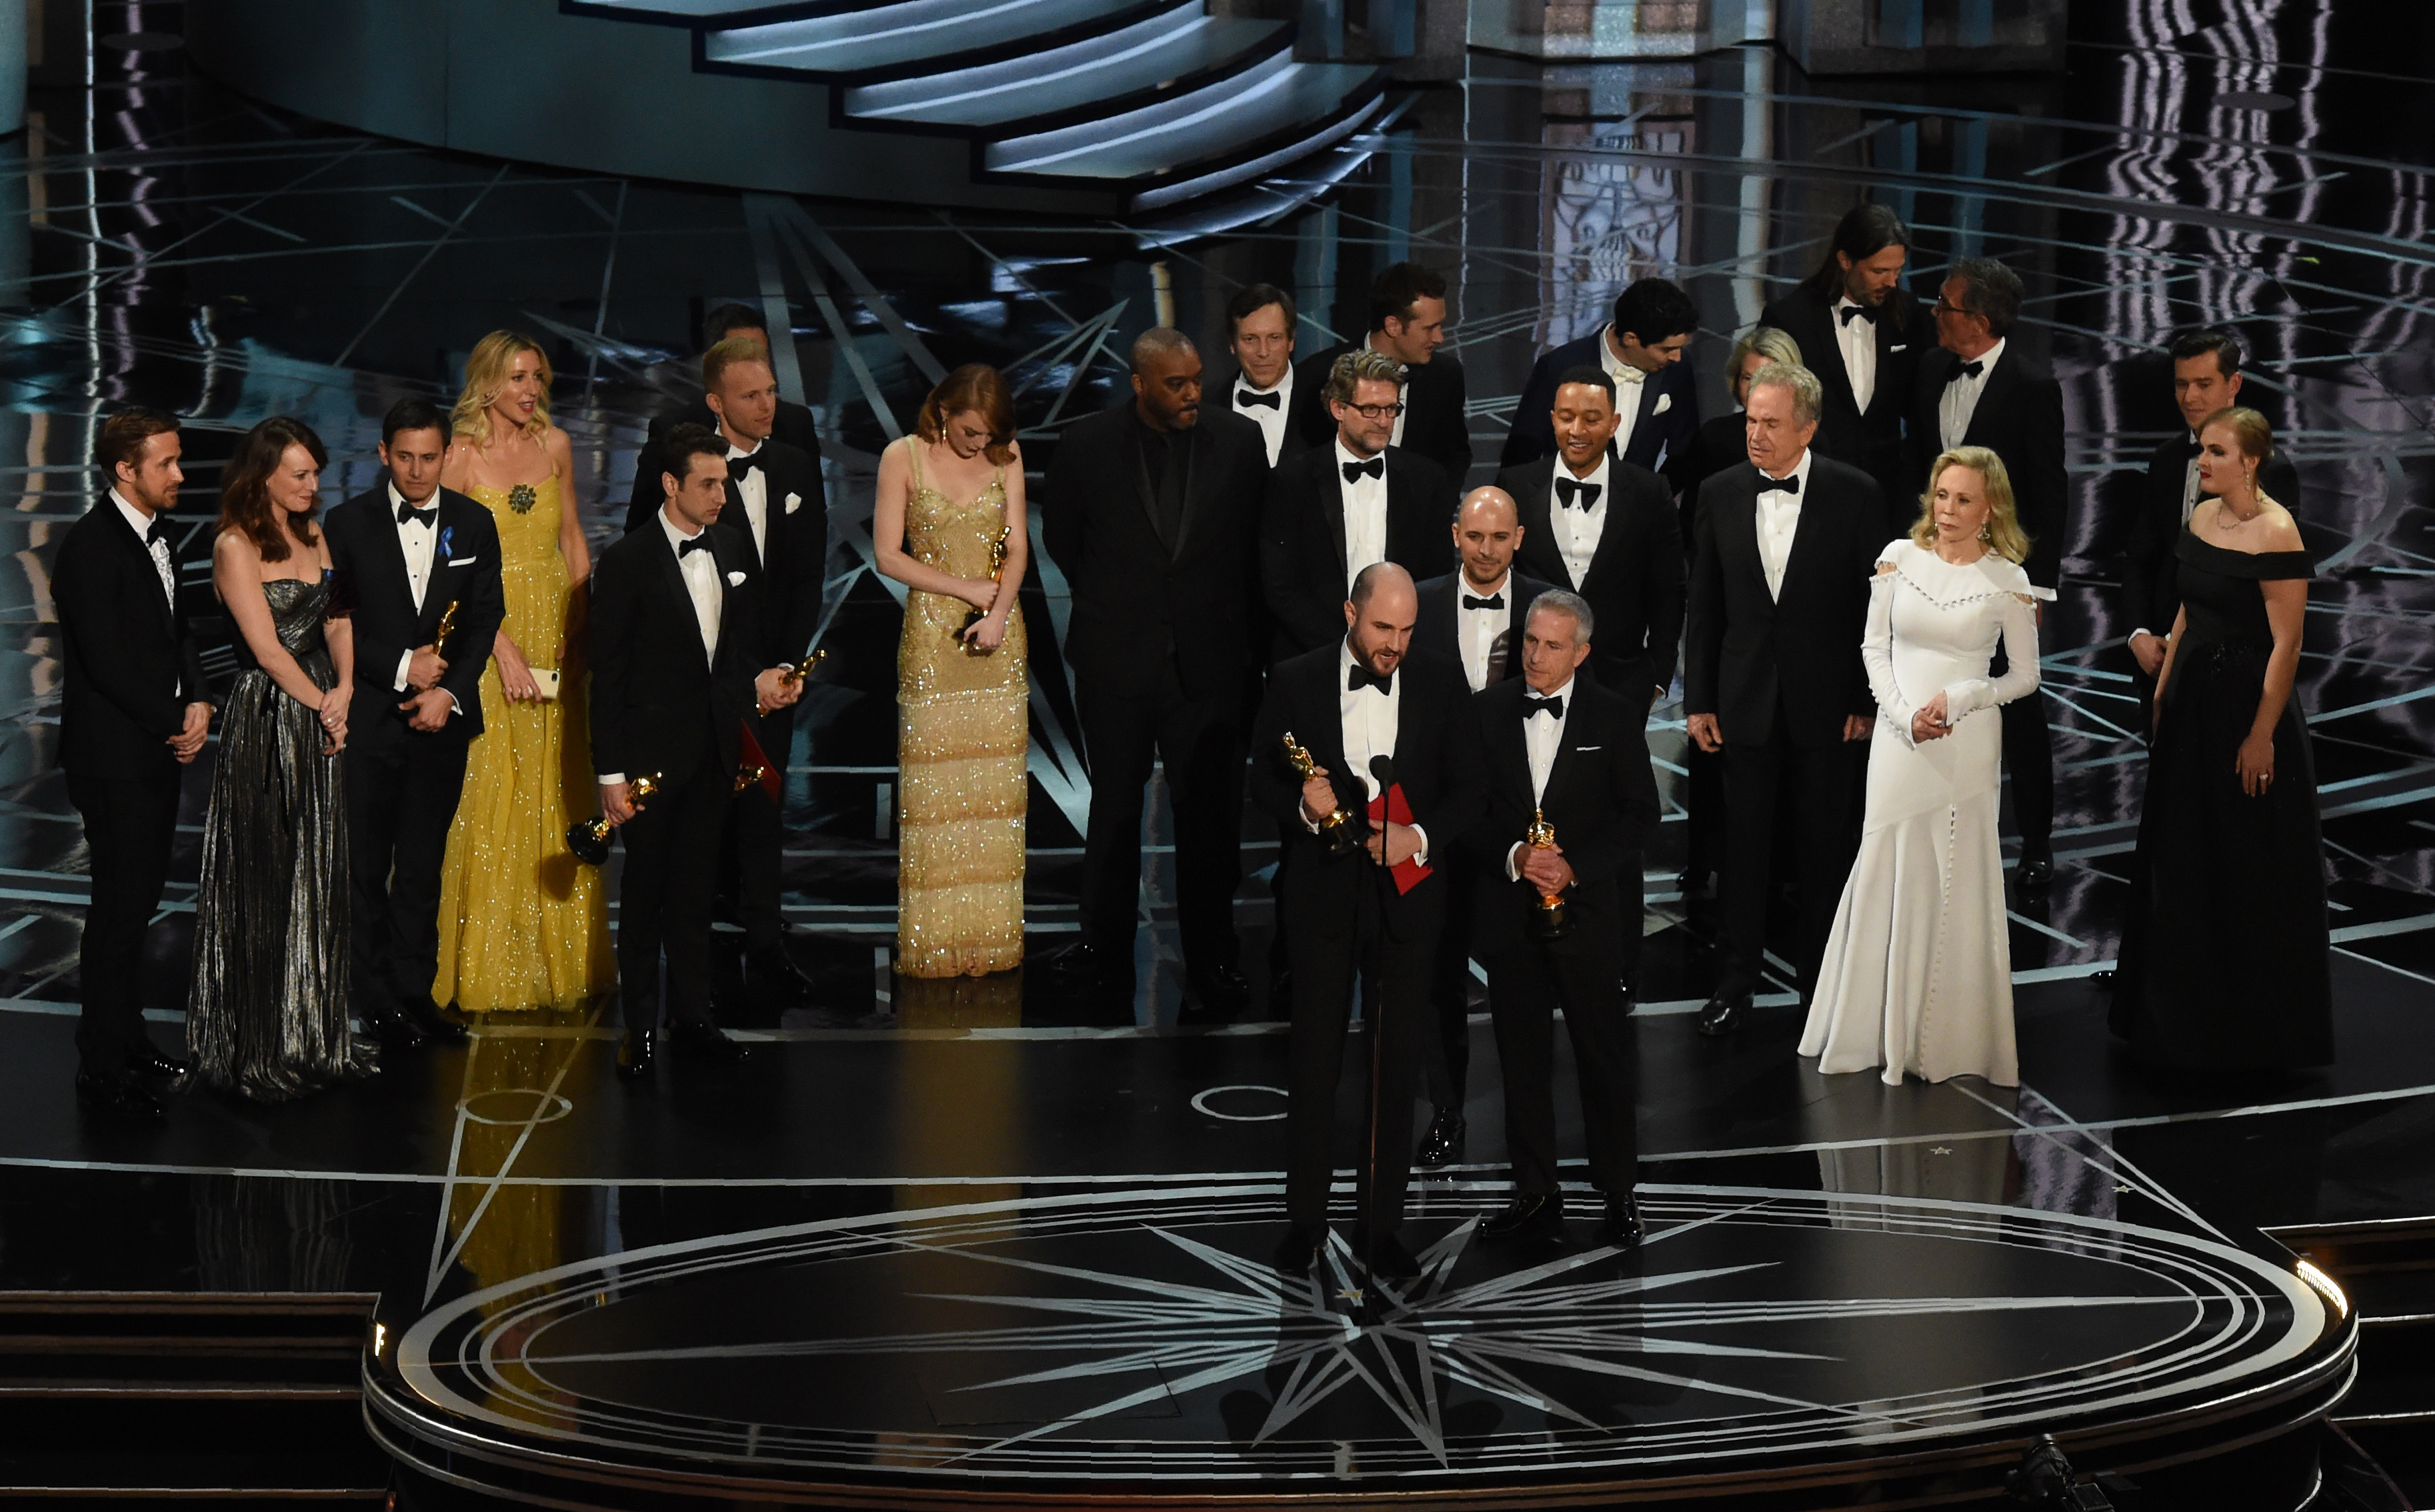 'La La Land' producer Jordan Horowitz (C) speaks while holing an Oscar and the winner card before reading the actual Best Picture winner 'Moonlight' onstage during the 89th Oscars on Feb. 26, 2017 in Hollywood, California. GETTY IMAGES/AFP/Mark Ralston